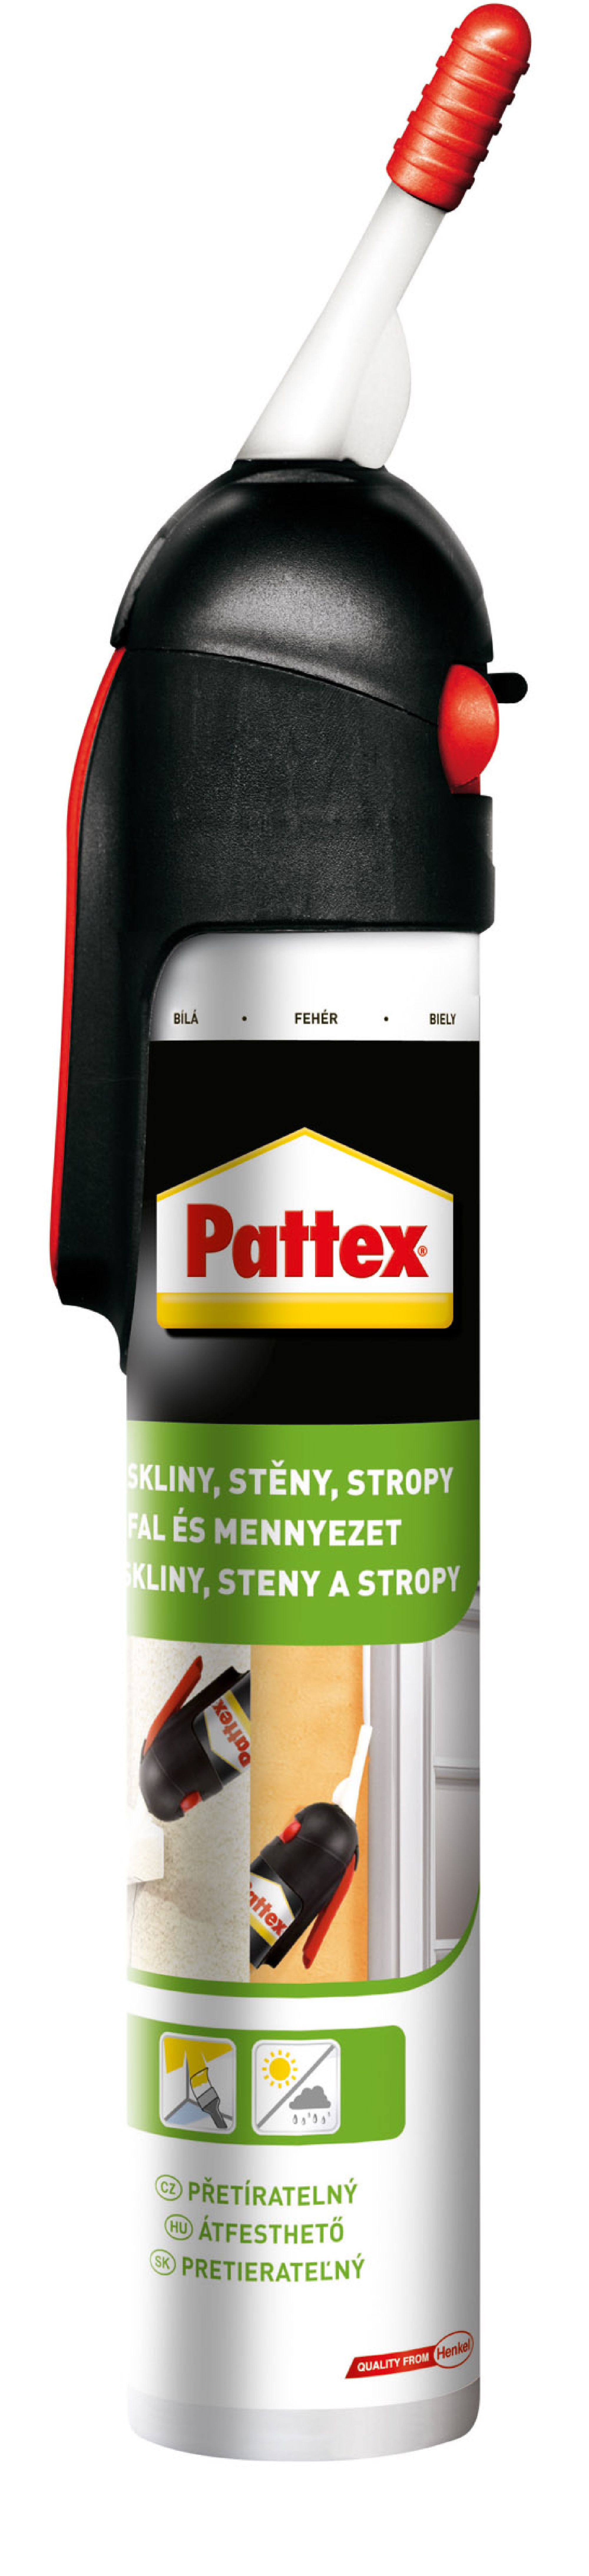 Pattex peaskliny pressure pack